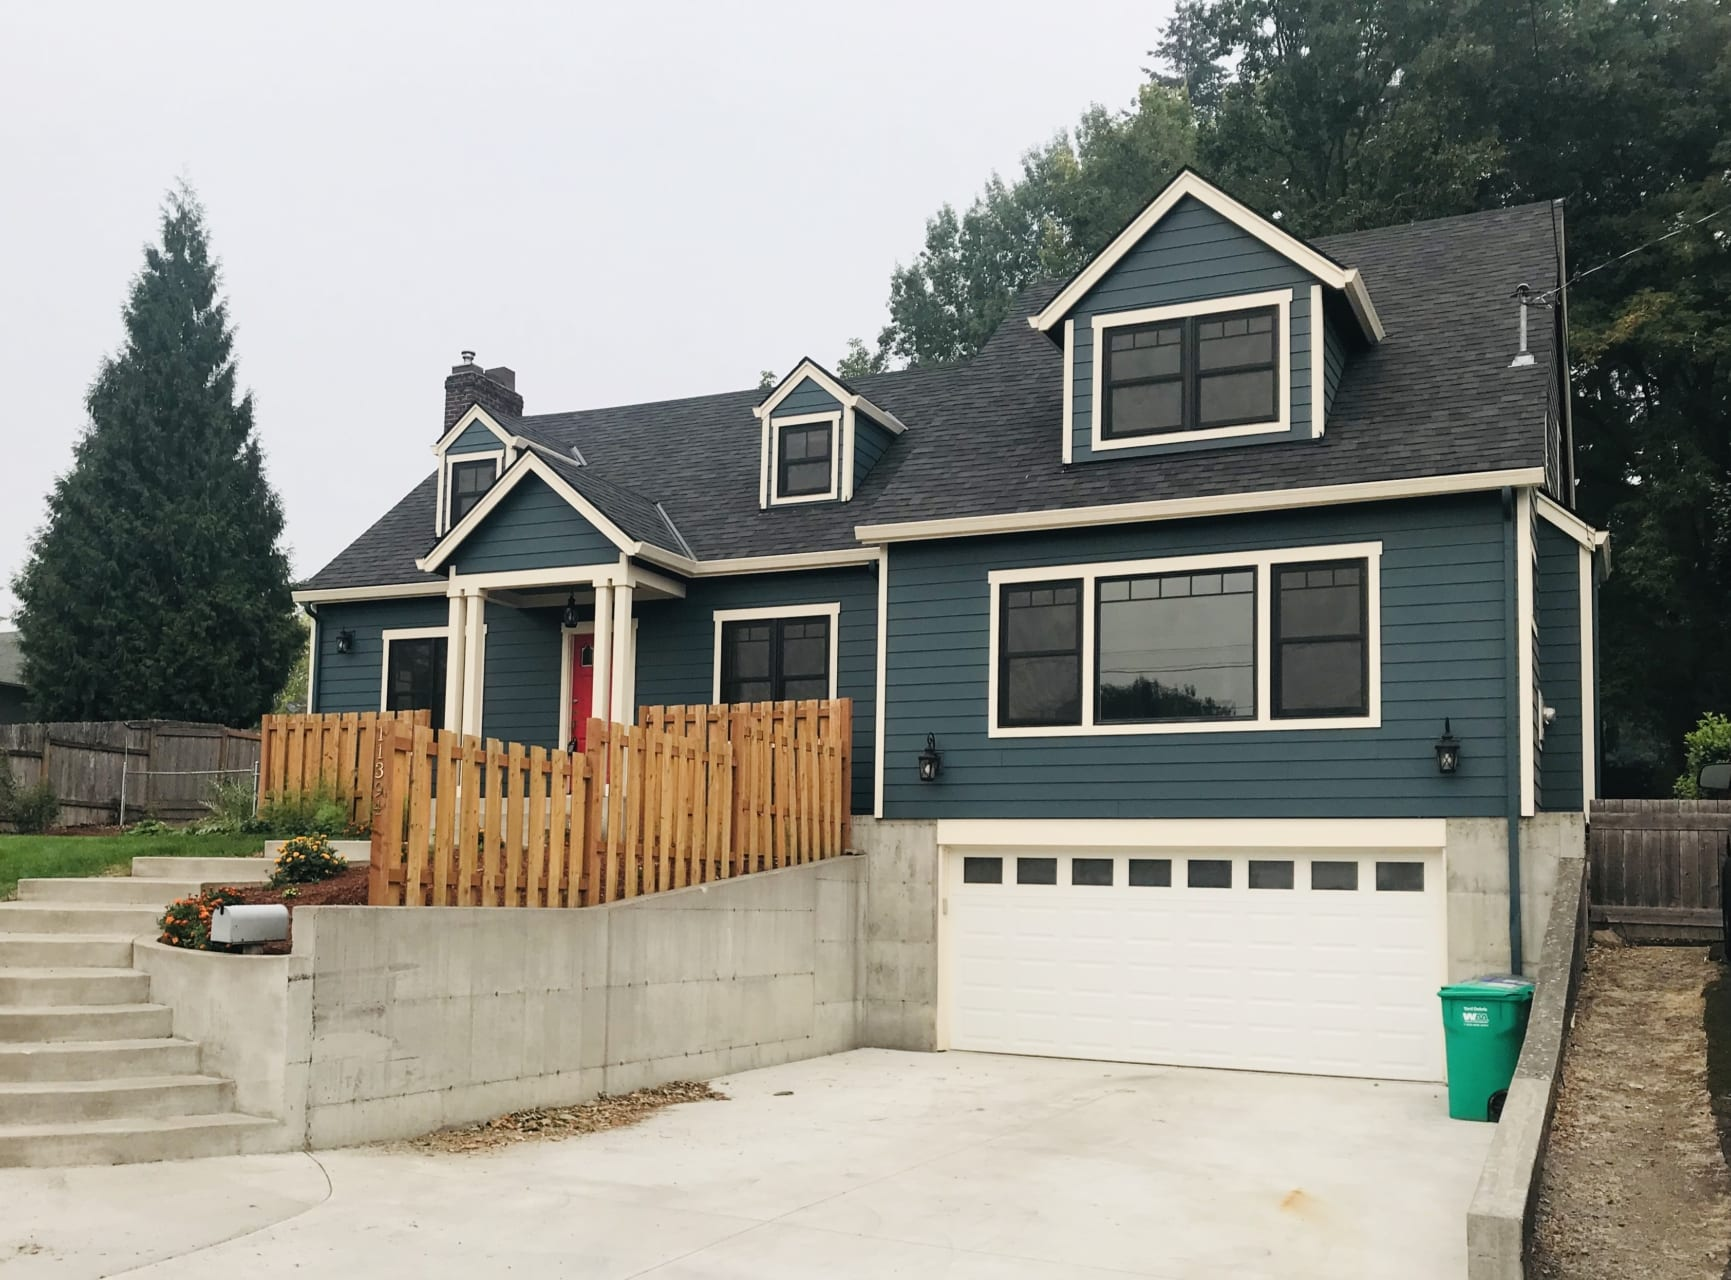 Milwaukie new siding and roof installation completed